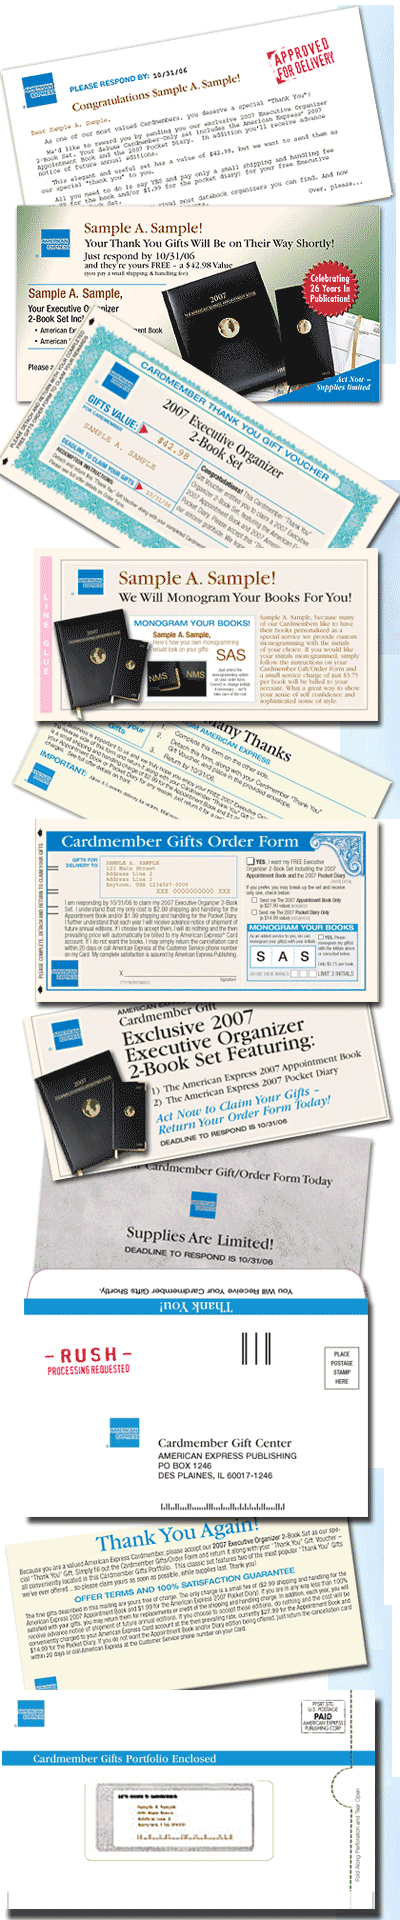 American Express Publishing